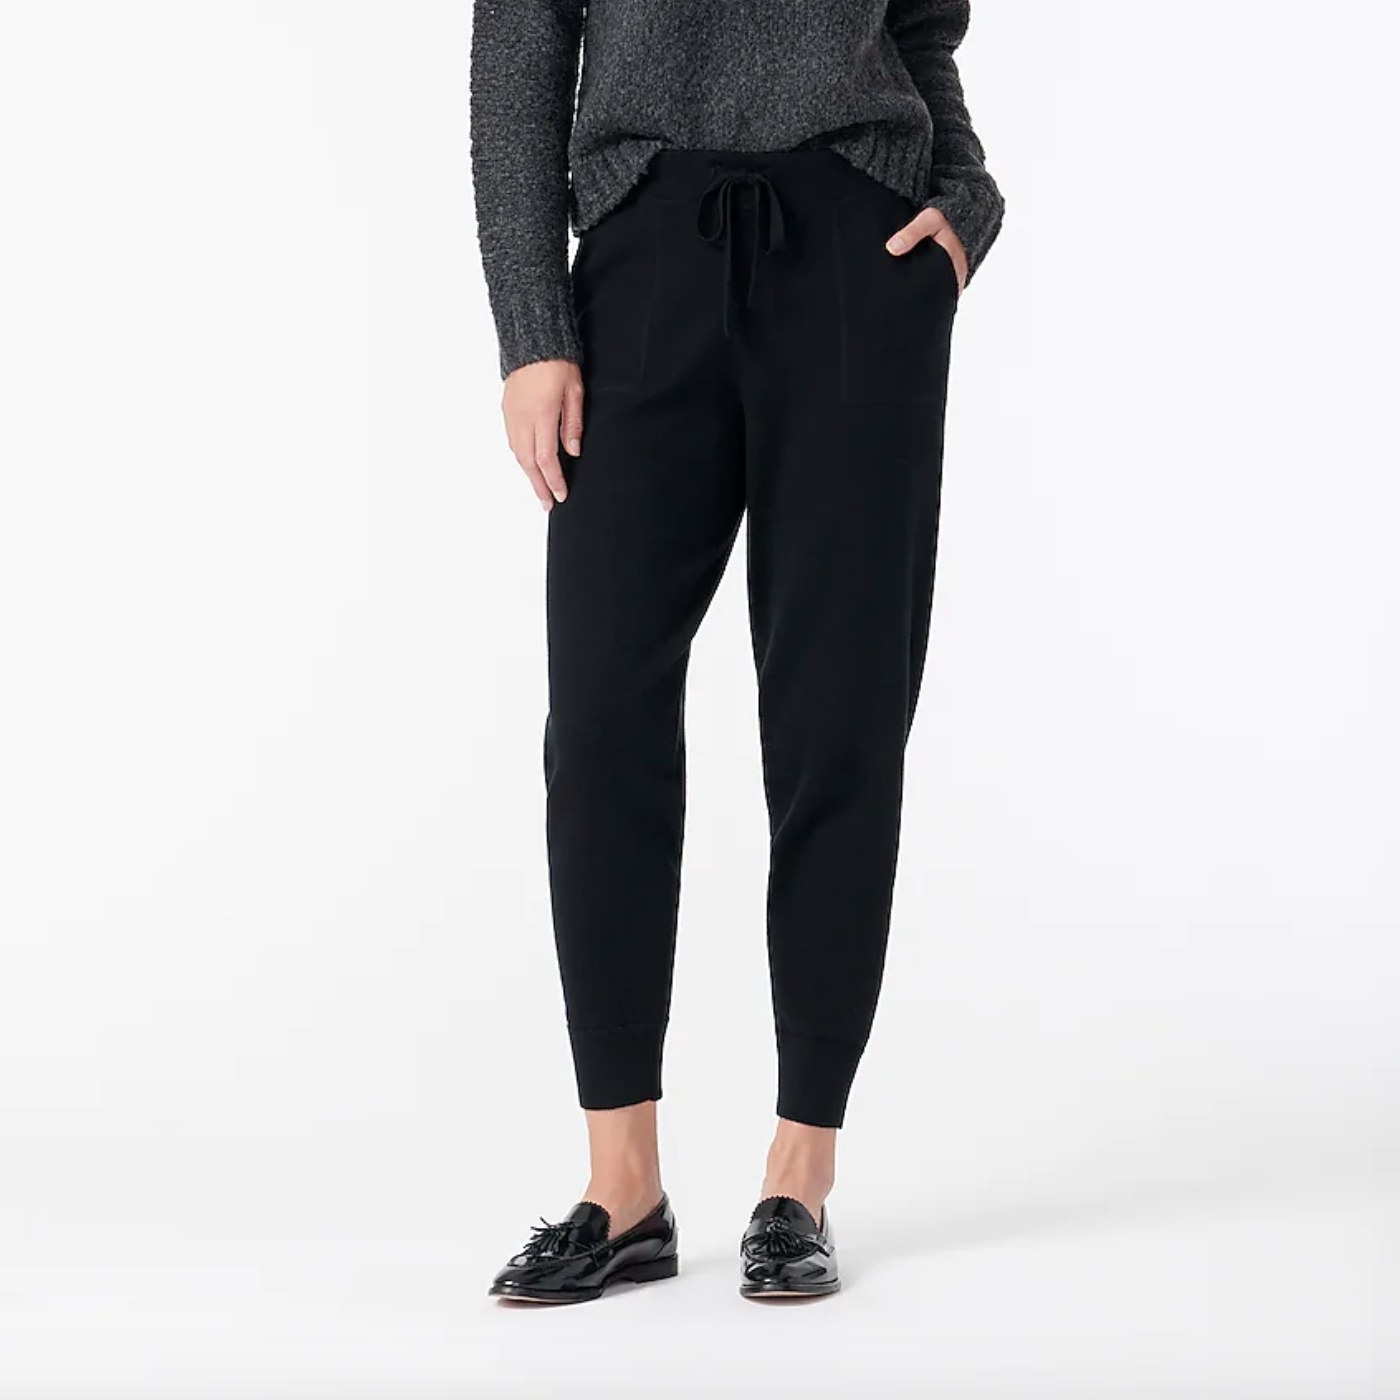 The cashmere joggers in black